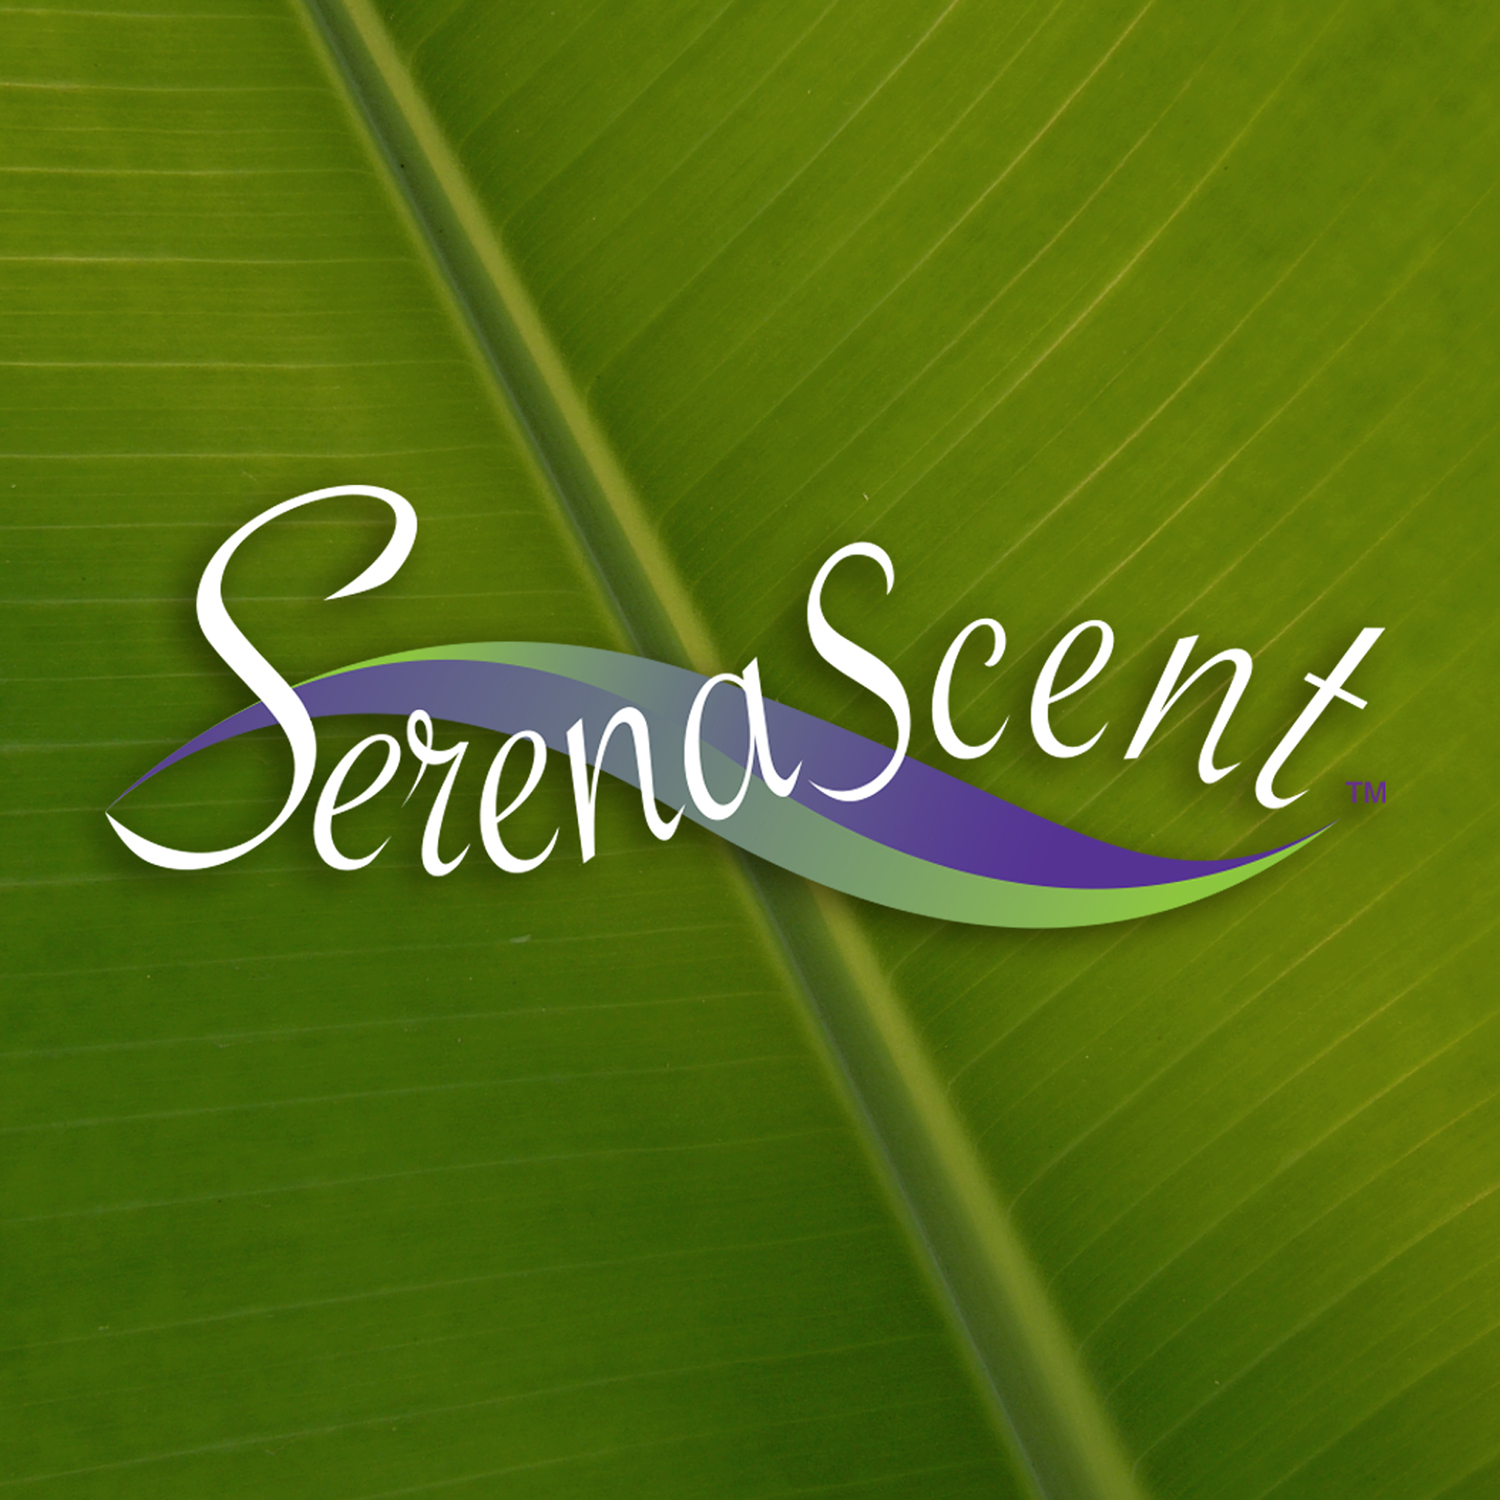 Serena Scent - Refresh & Calm